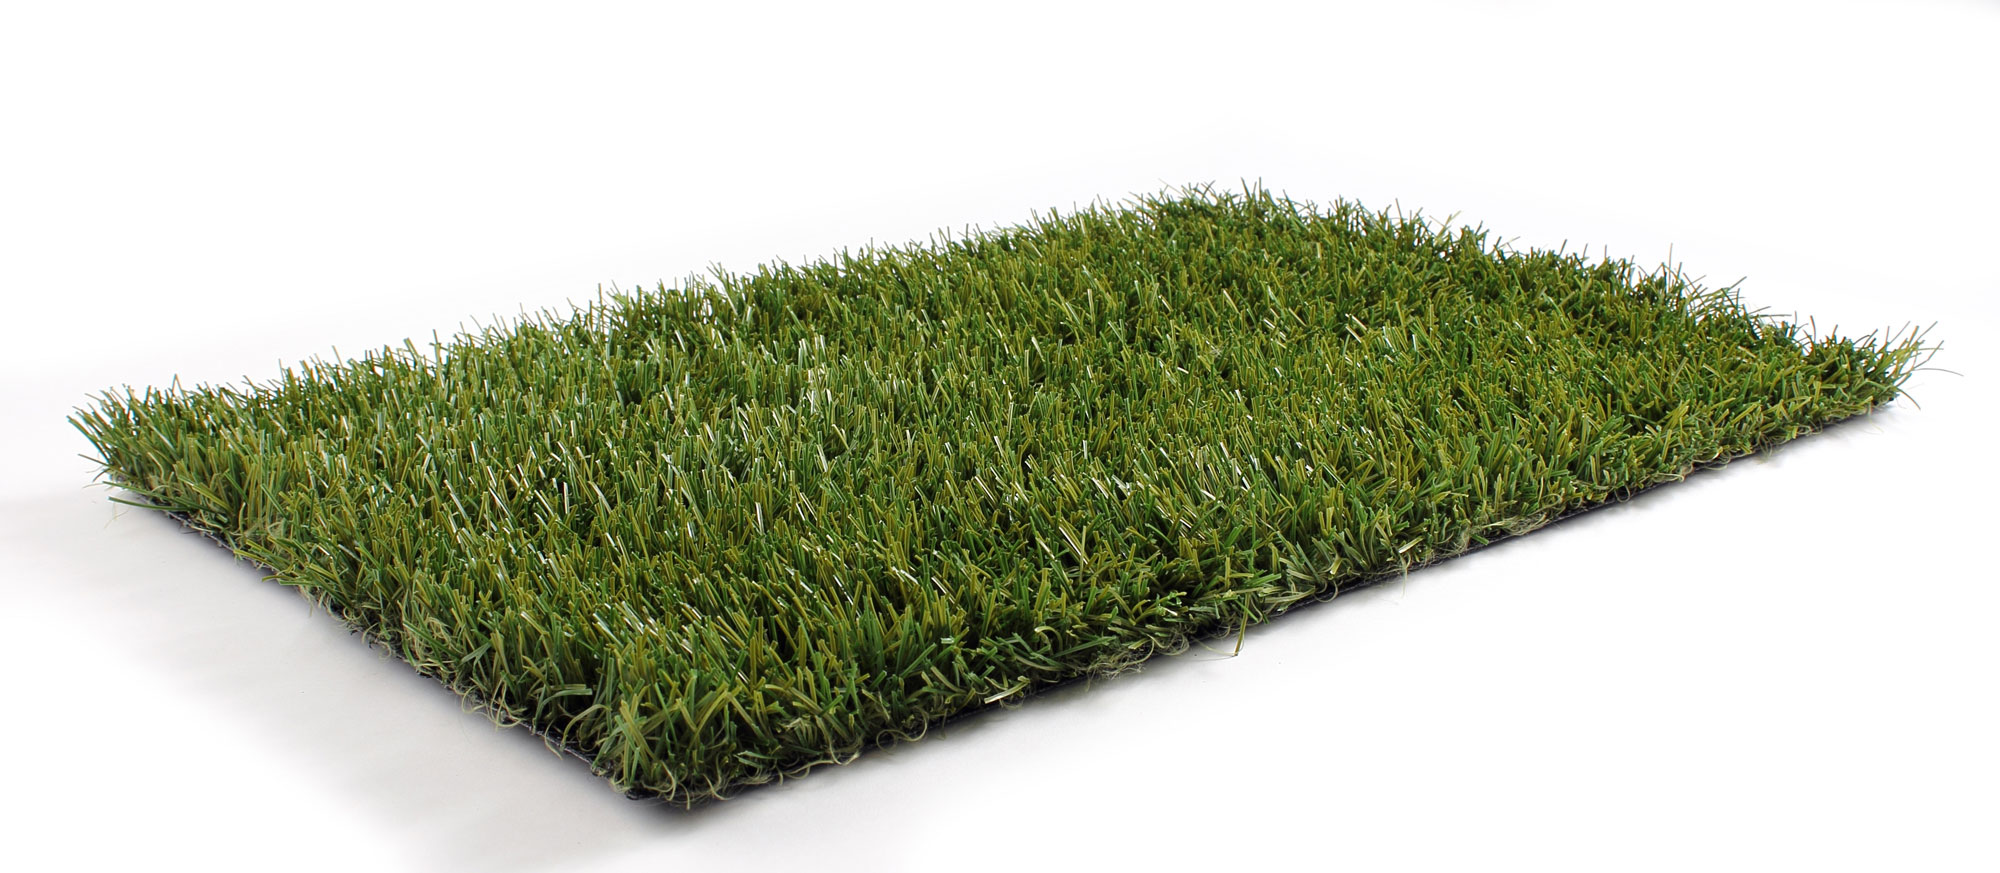 royal grass urban artificial grass football plot public. Black Bedroom Furniture Sets. Home Design Ideas